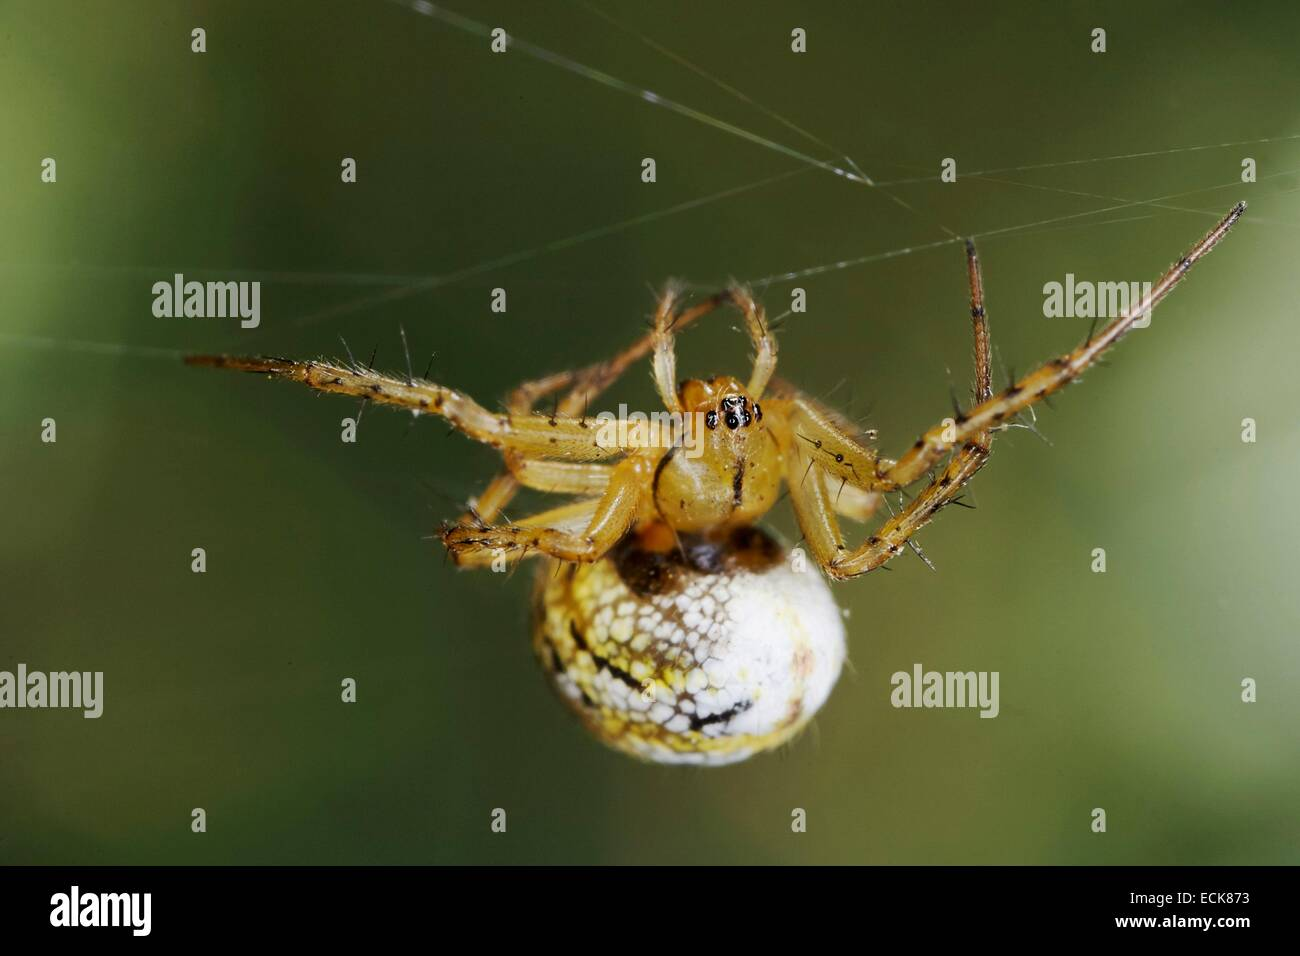 France, Araneae, Araneidae, Cricket-bat orb weaver (Mangora acalypha) hanging on a silk thread - Stock Image